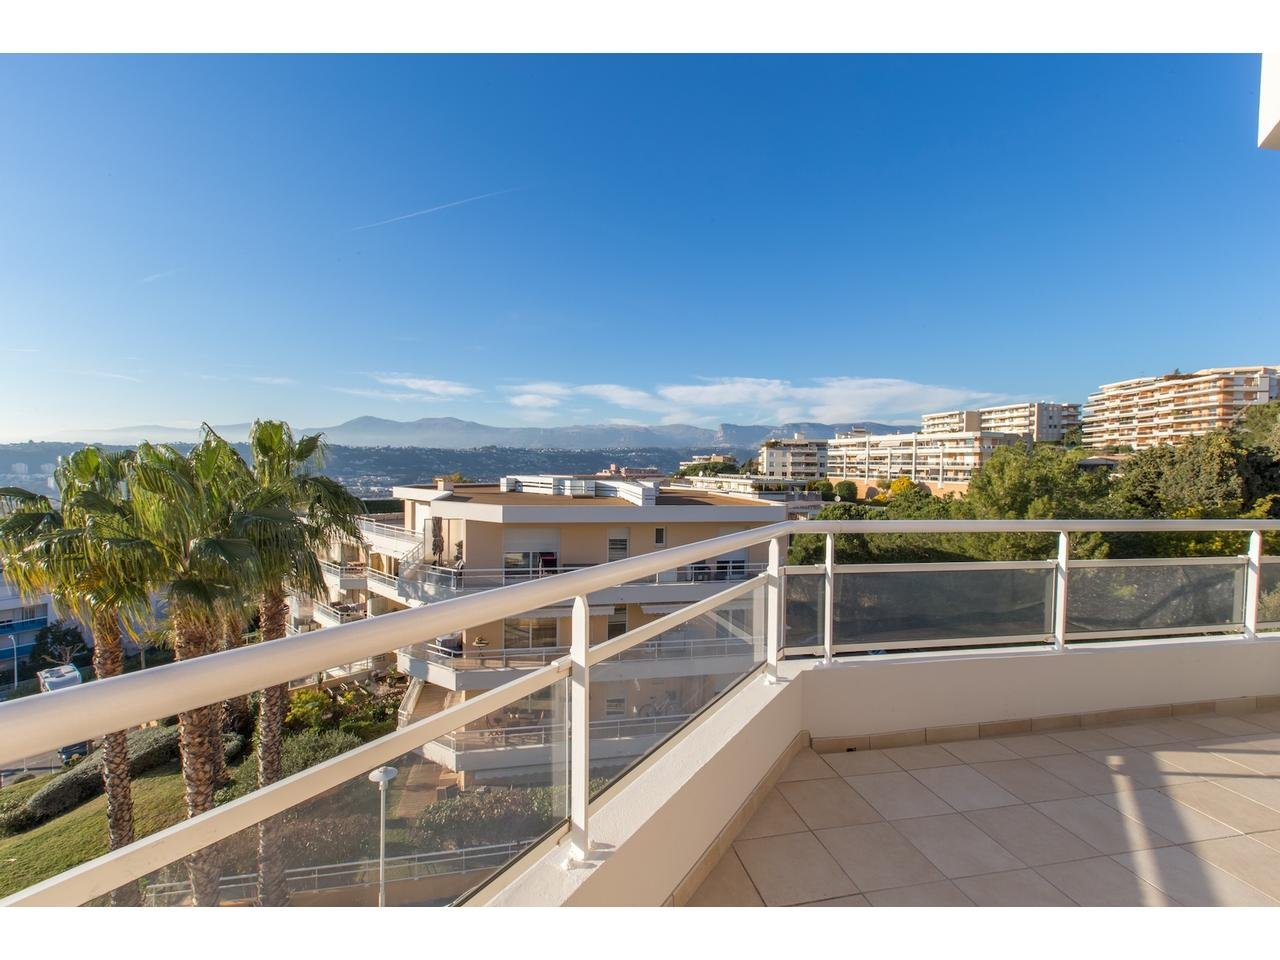 Appartement  2 Rooms 49.65m2  for sale   380000 €